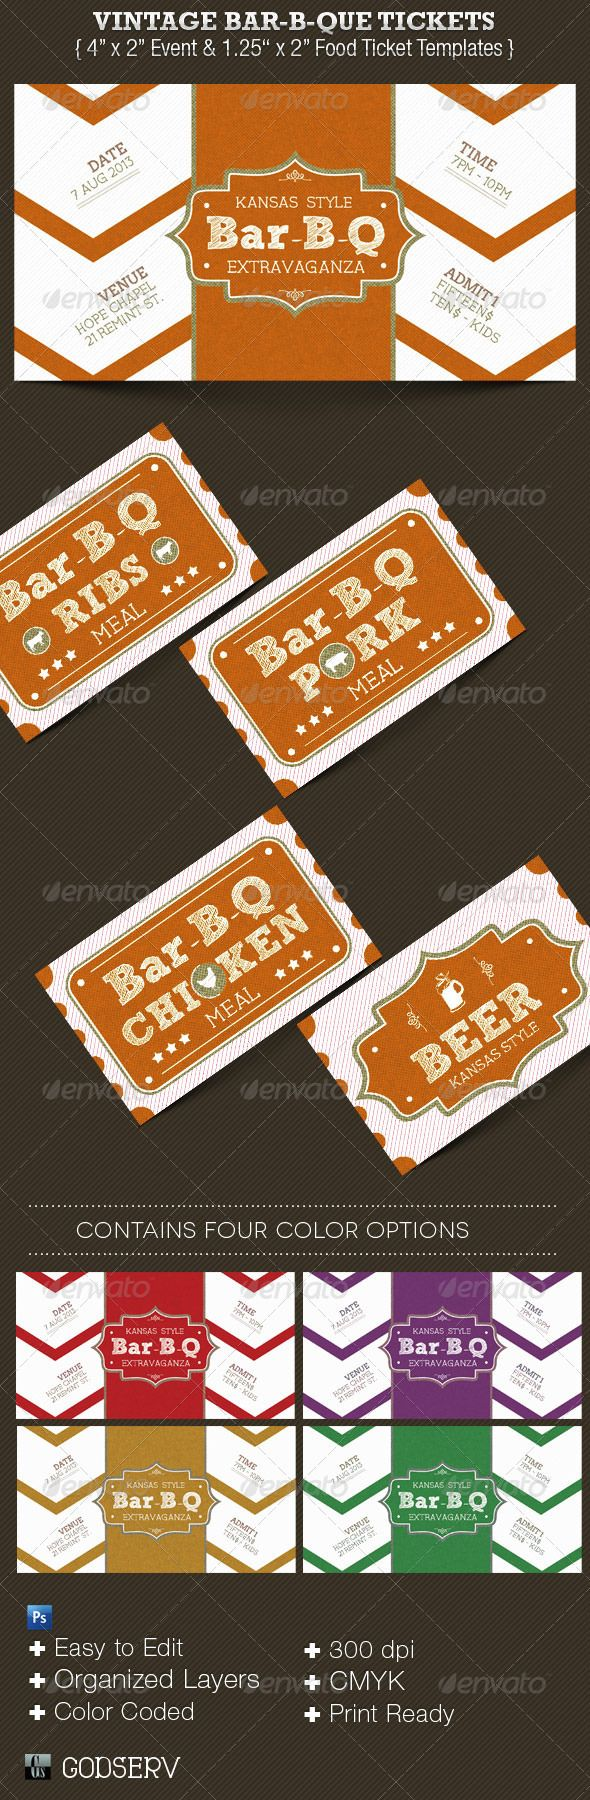 Free Meal Ticket Template Corks And Kegs Ticket Template  Ticket Template Print Templates .